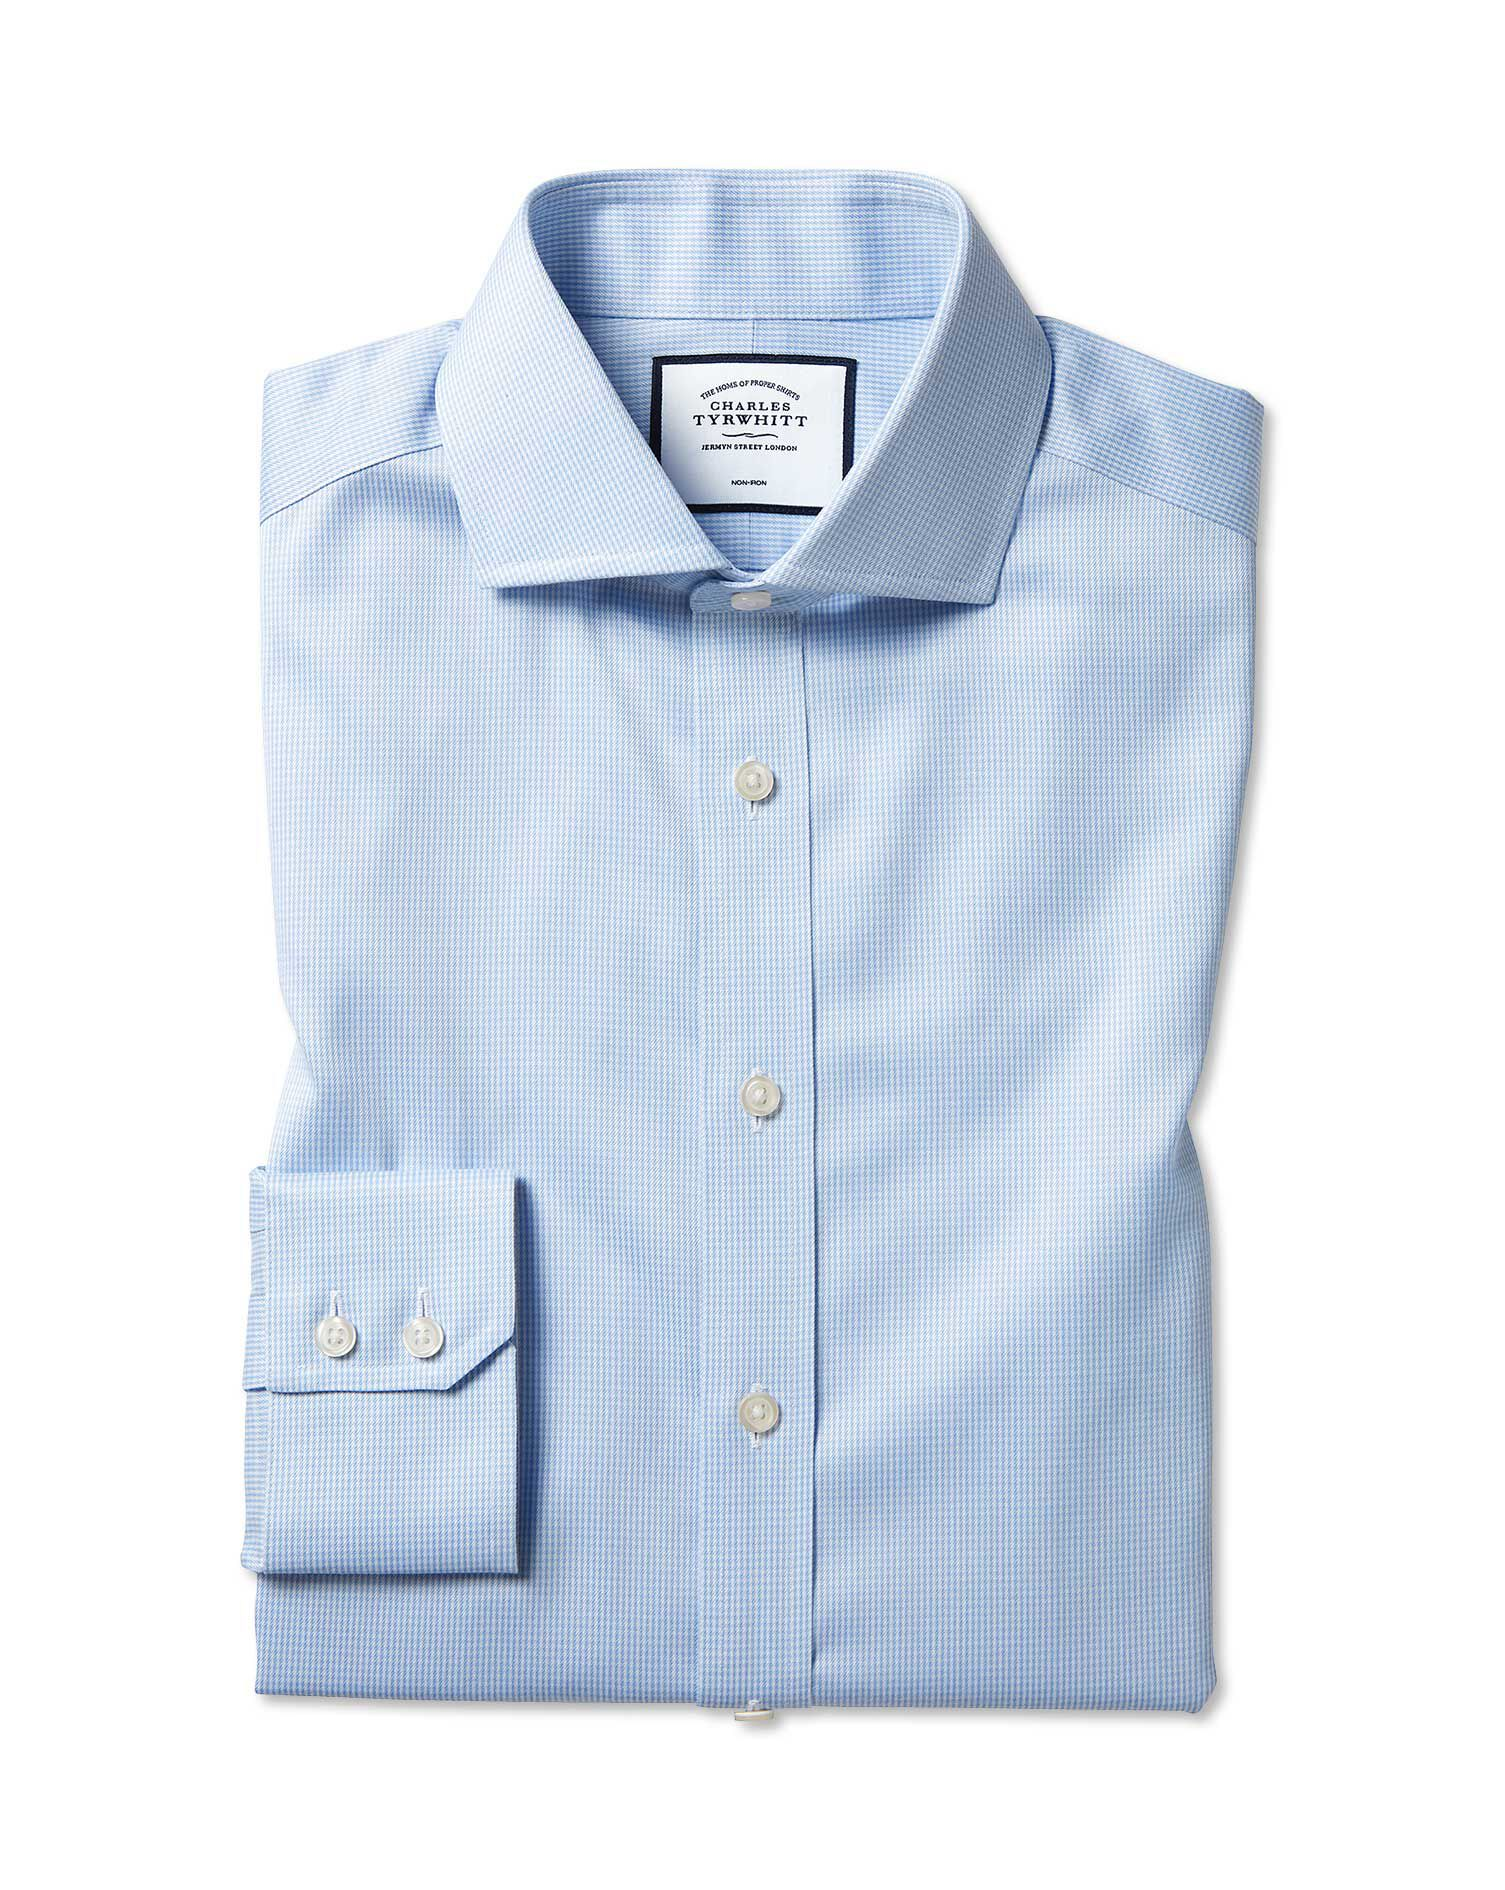 Slim Fit Cutaway Non-Iron Puppytooth Sky Blue Cotton Formal Shirt Single Cuff Size 15/35 by Charles